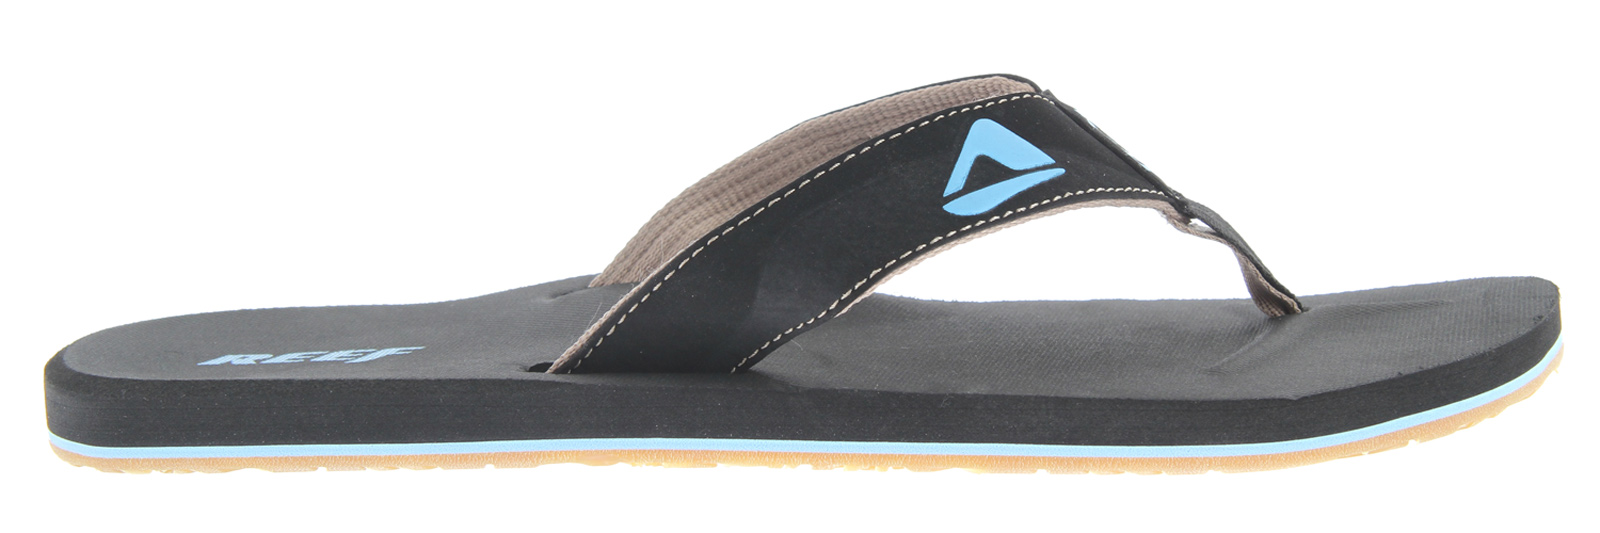 Surf Key Features of the Reef HT Sandals: Soft, comfortable, water-friendly synthetic nubuck upper Soft reef polyester woven lining Contoured eva footbed with anatomical arch support Grippy molded reef rubber outsole - $16.95